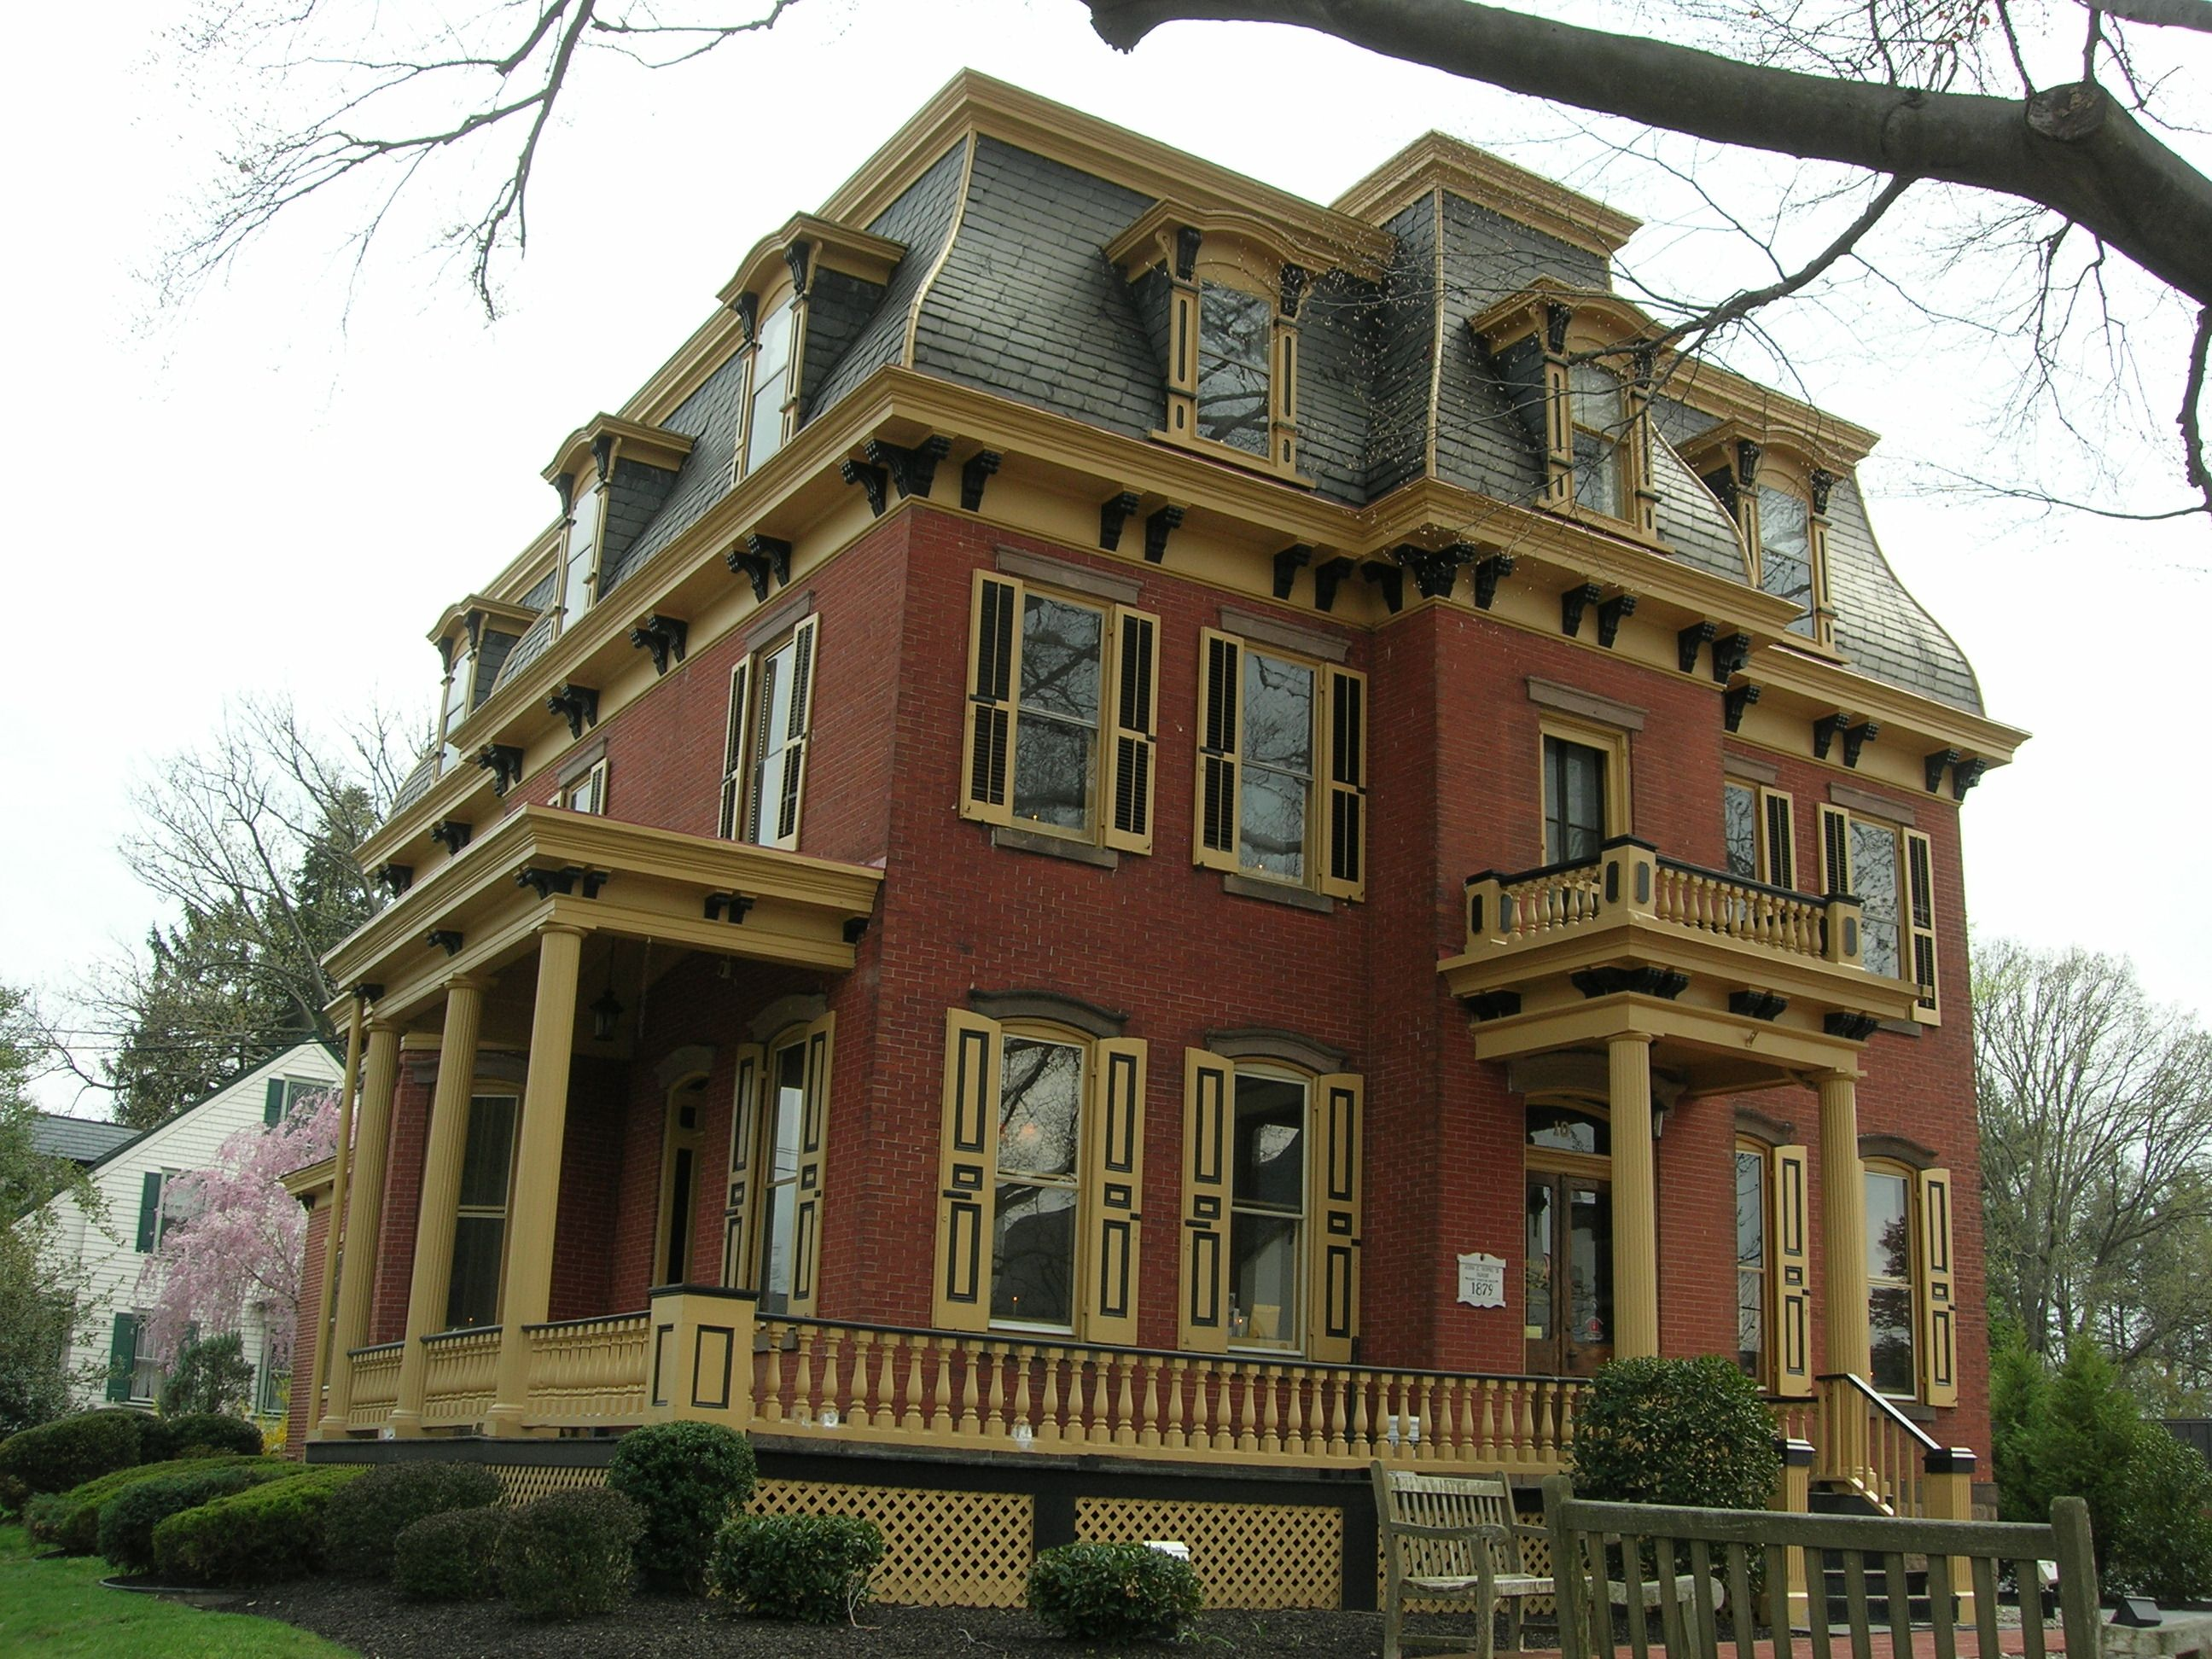 architectural styles | the queen anne decorative style shows in